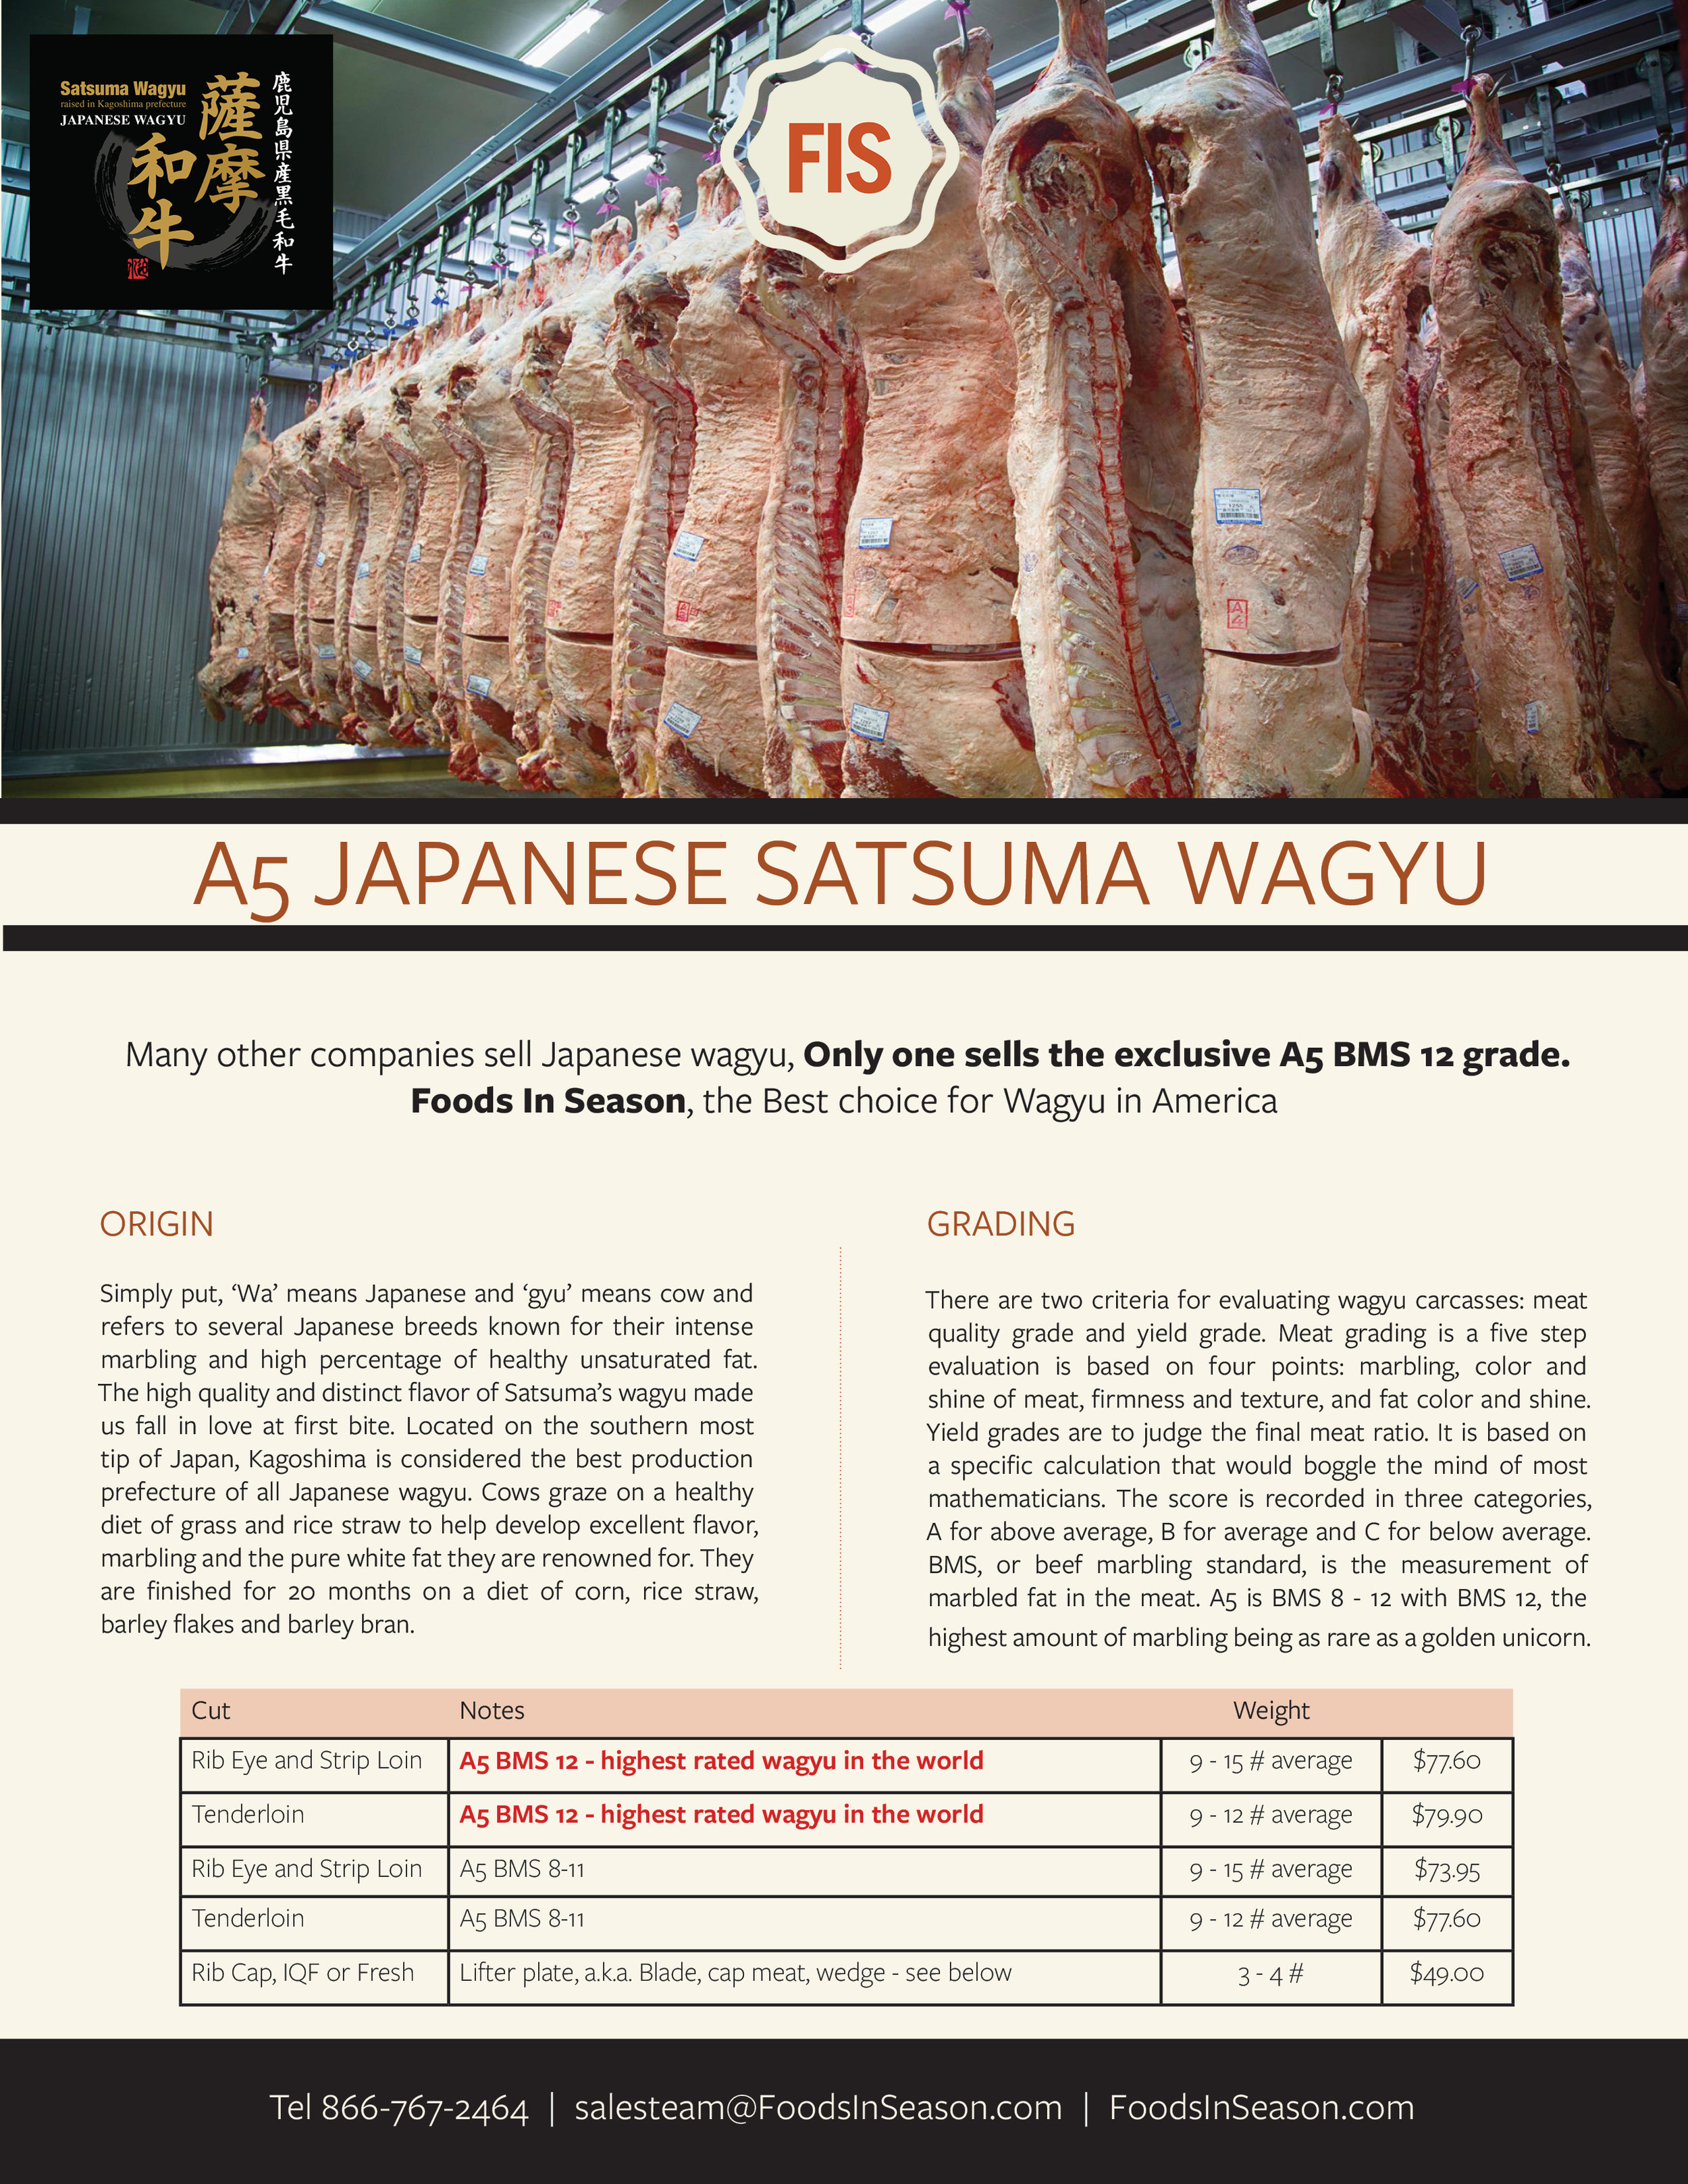 FIS, America's Only Supplier of A5 BMS 12 Japanese Wagyu